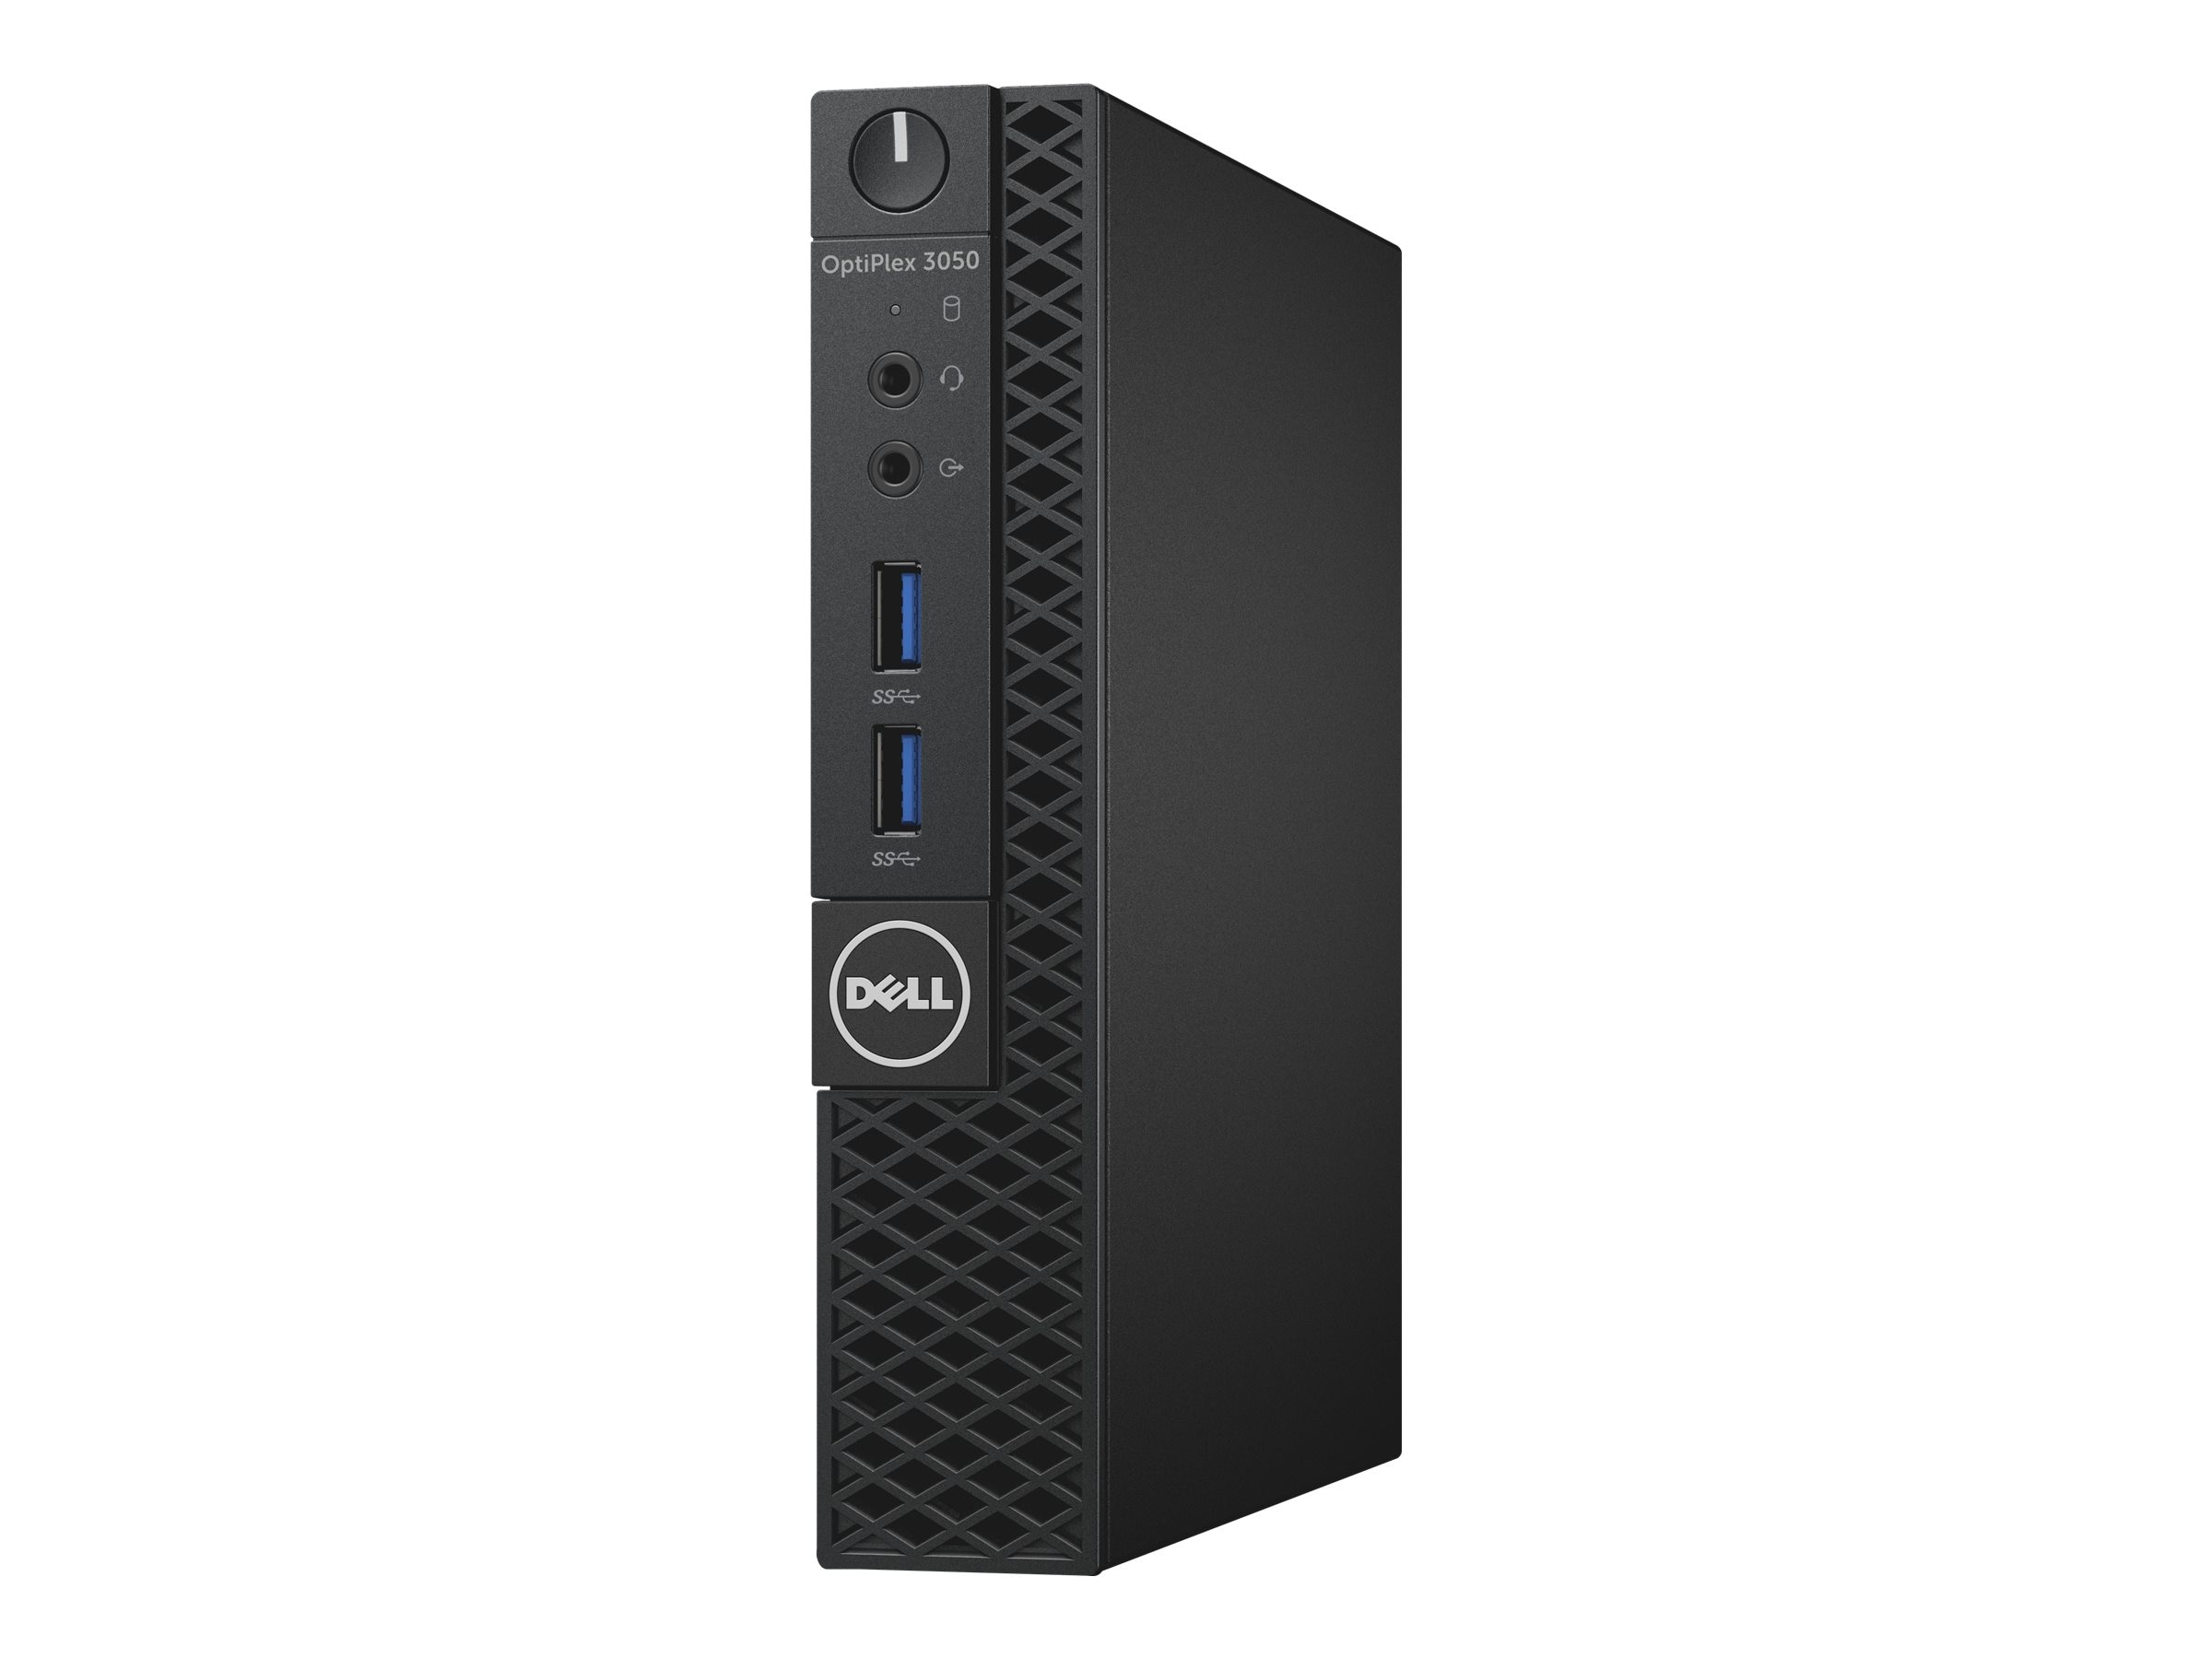 Dell OptiPlex 3050 3.4GHz Core i3 4GB RAM 128GB hard drive, KF6FG